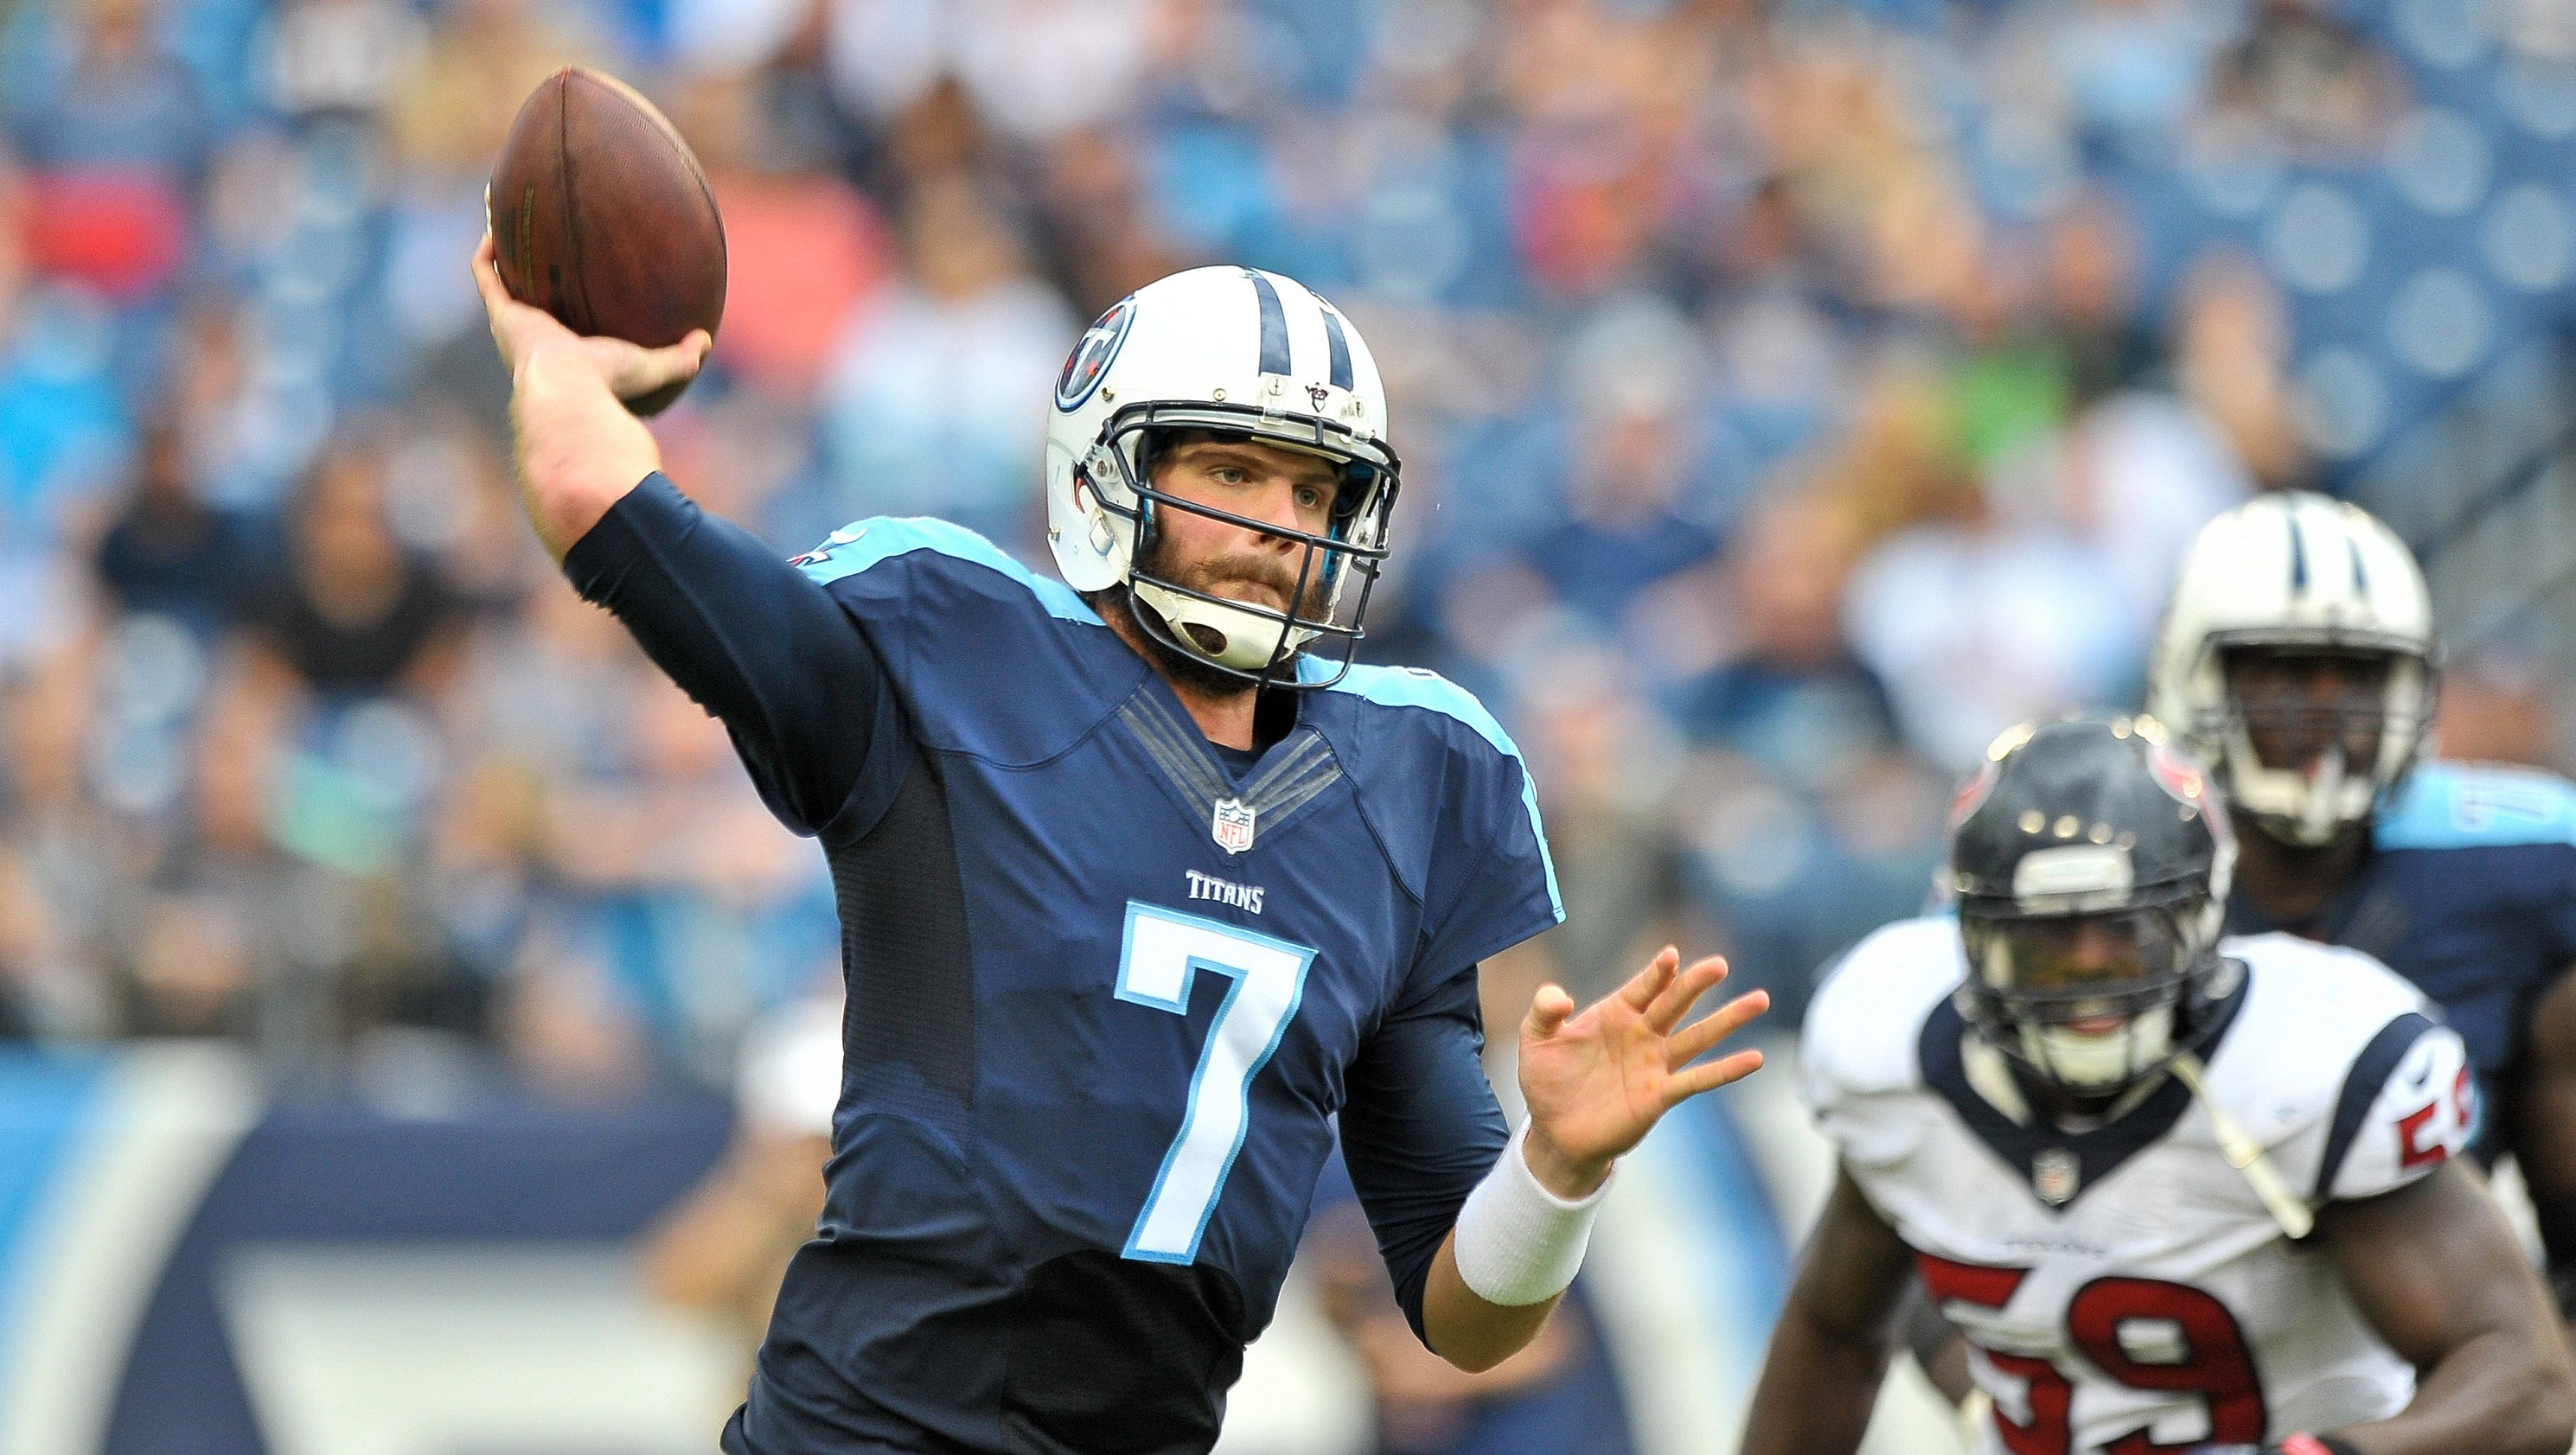 636082586730037299-usp-nfl-houston-texans-at-tennessee-titans-78501044